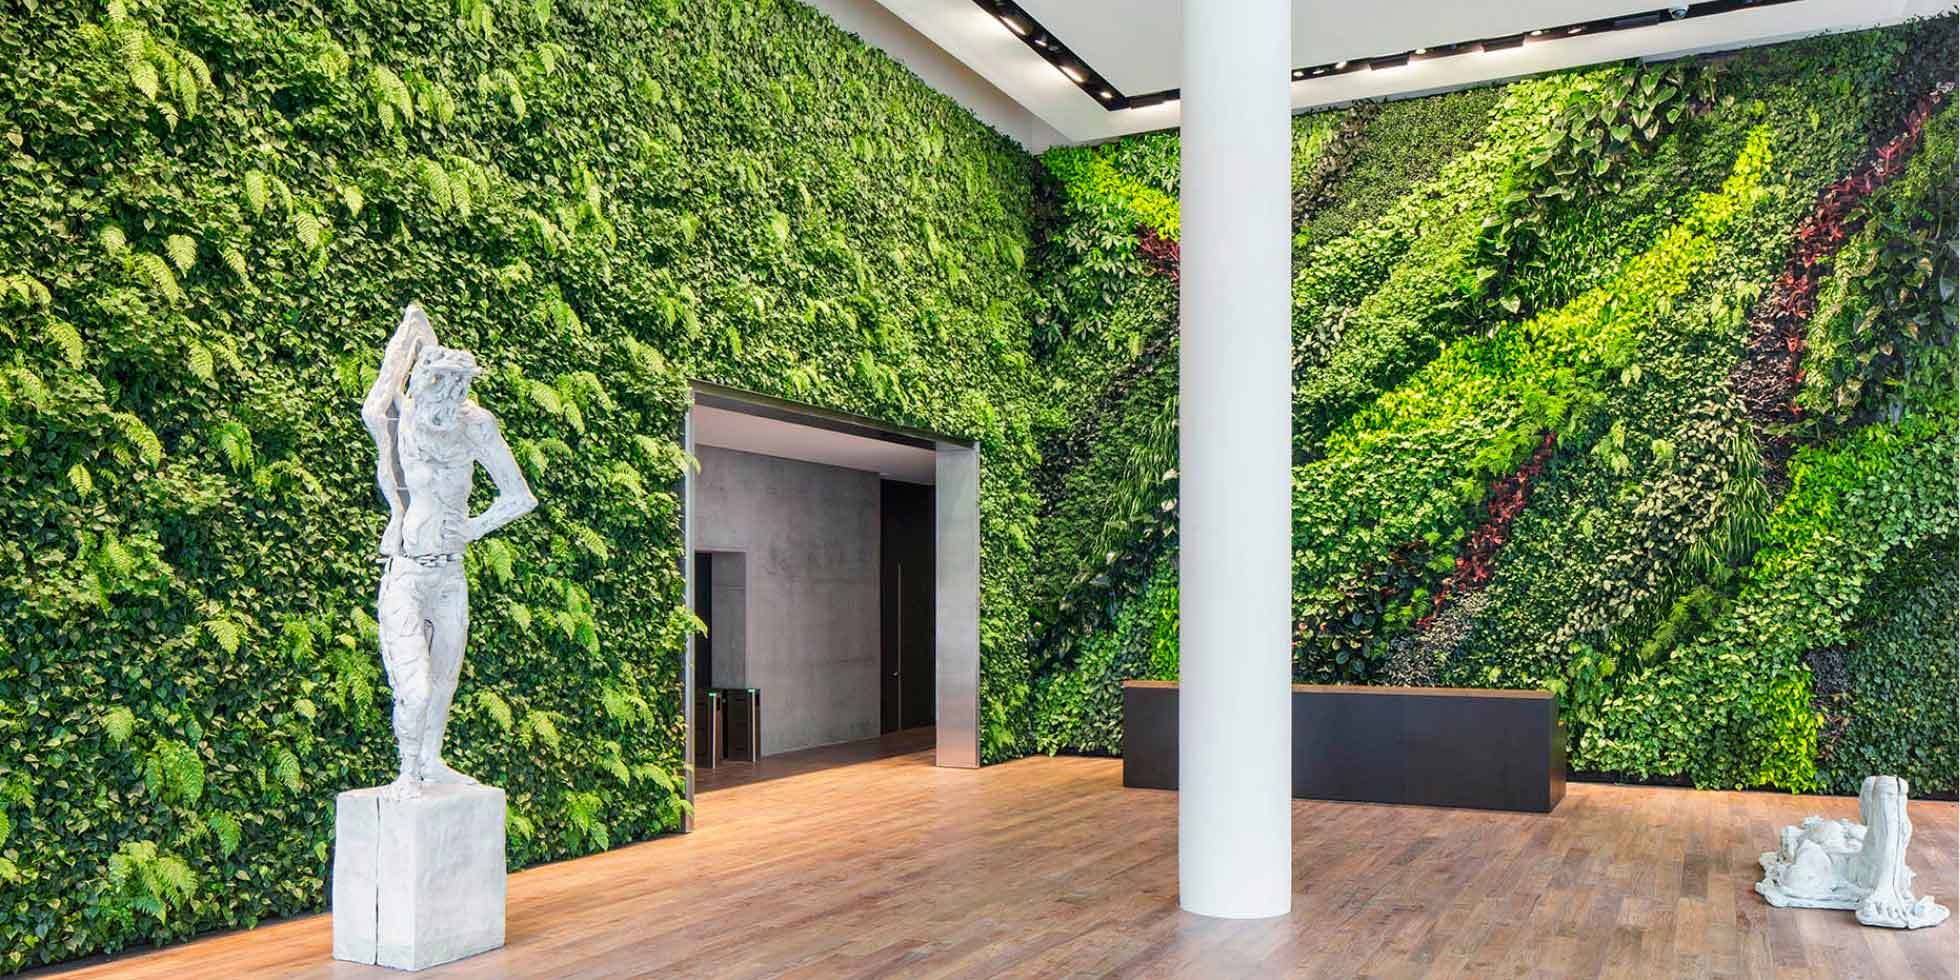 neustar san francisco office 2. Foundry Square III Living Wall By Habitat Horticulture - View 1 Neustar San Francisco Office 2